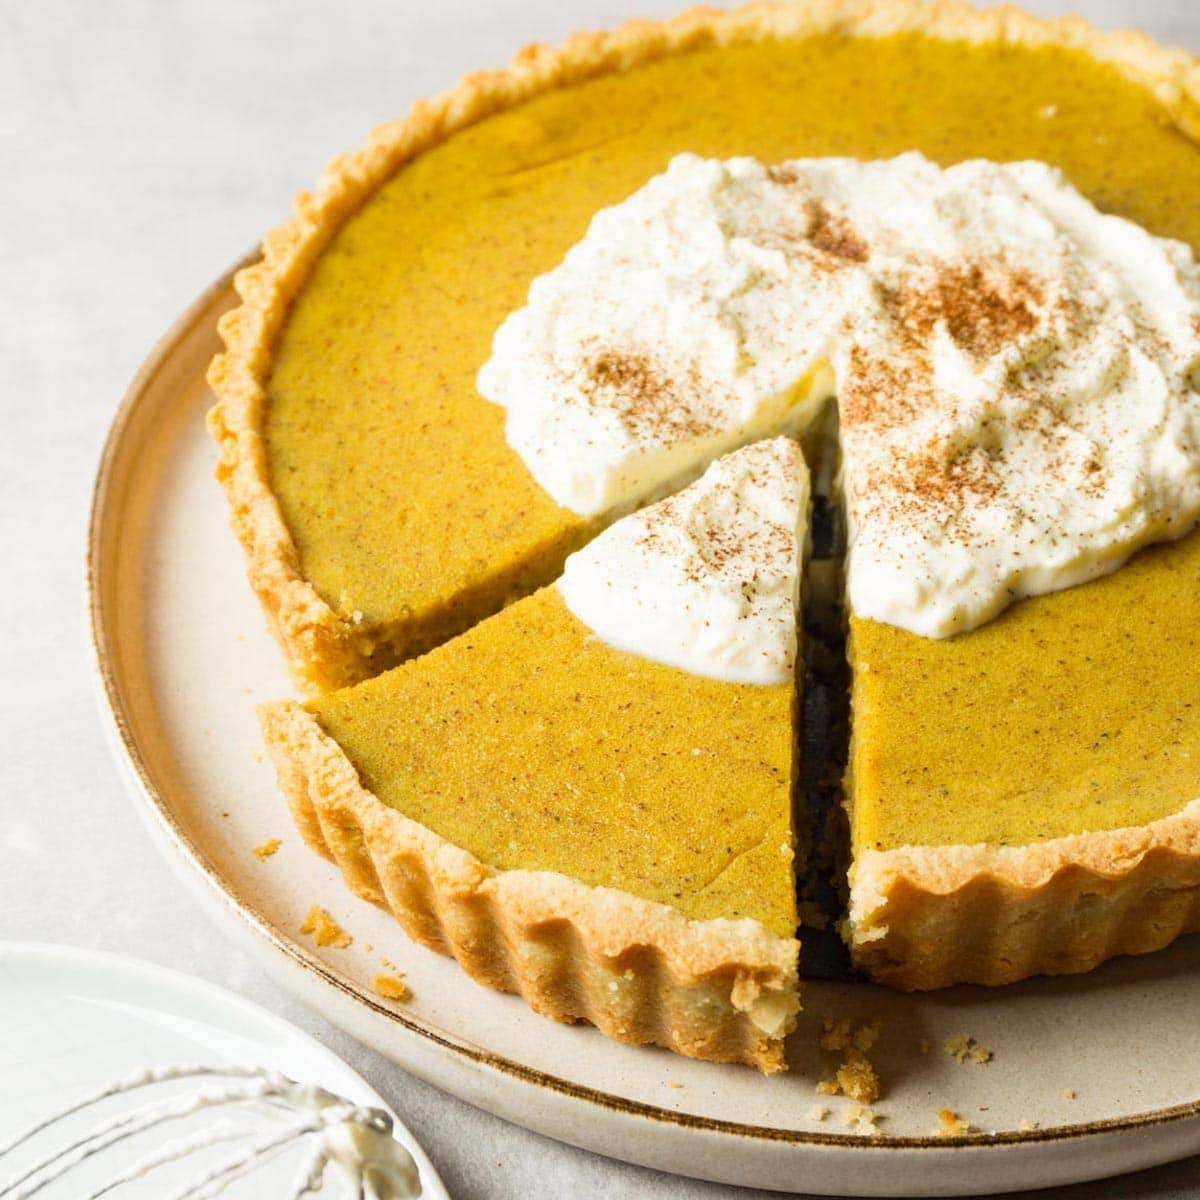 Close up image of a pumpkin pie with whipped cream and ground cinnamon on top served on a large round plate, one piece cut out but not taken.